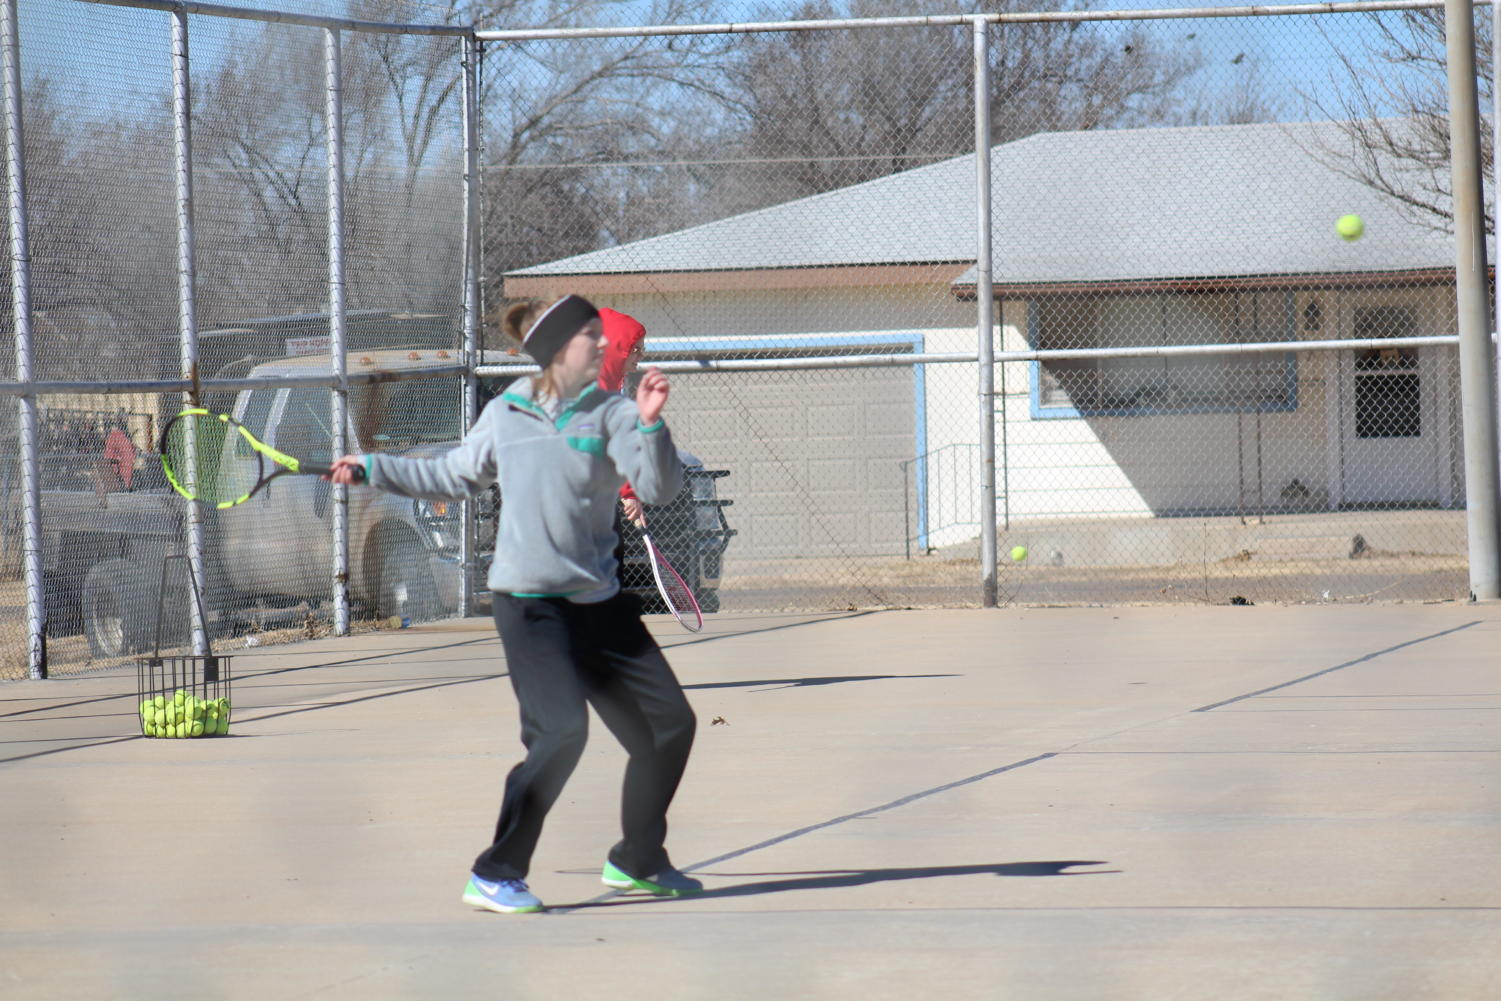 Junior Madison Friemel sets up to hit the ball. District tennis is in Randall on Monday April 2. The first matches will begin at 9 a.m.